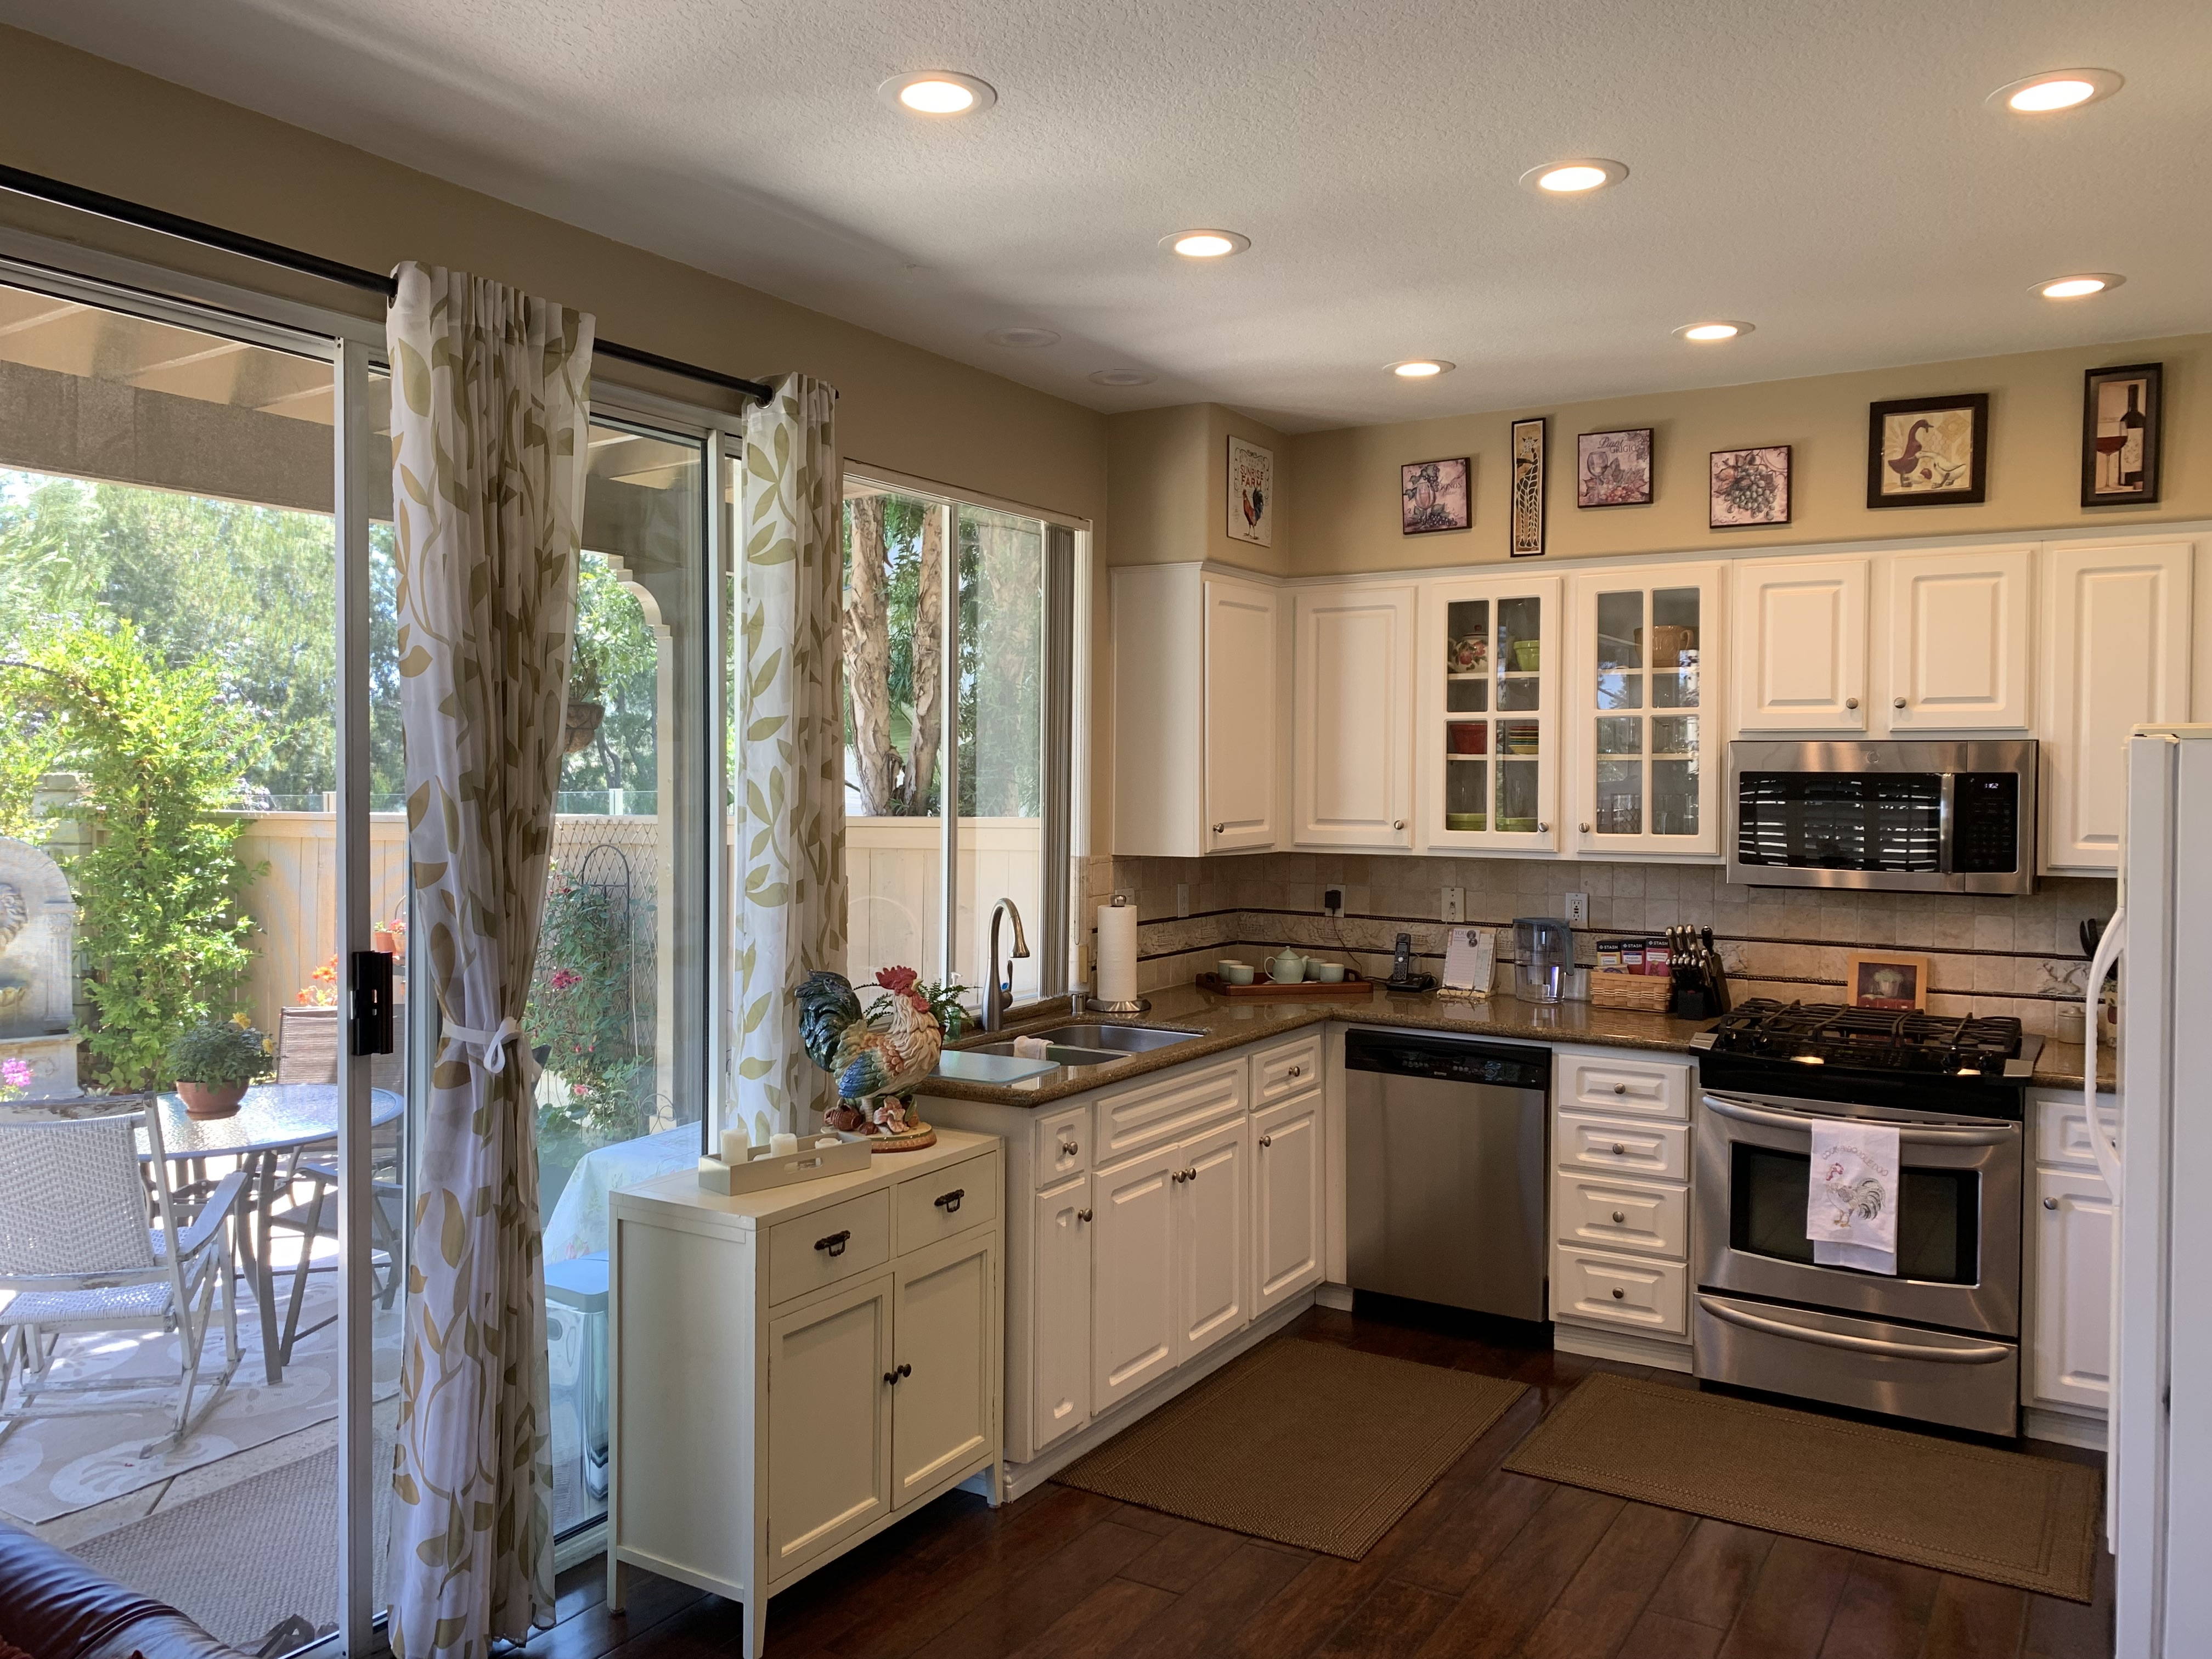 4 bedroom house for sale in laguna niguel